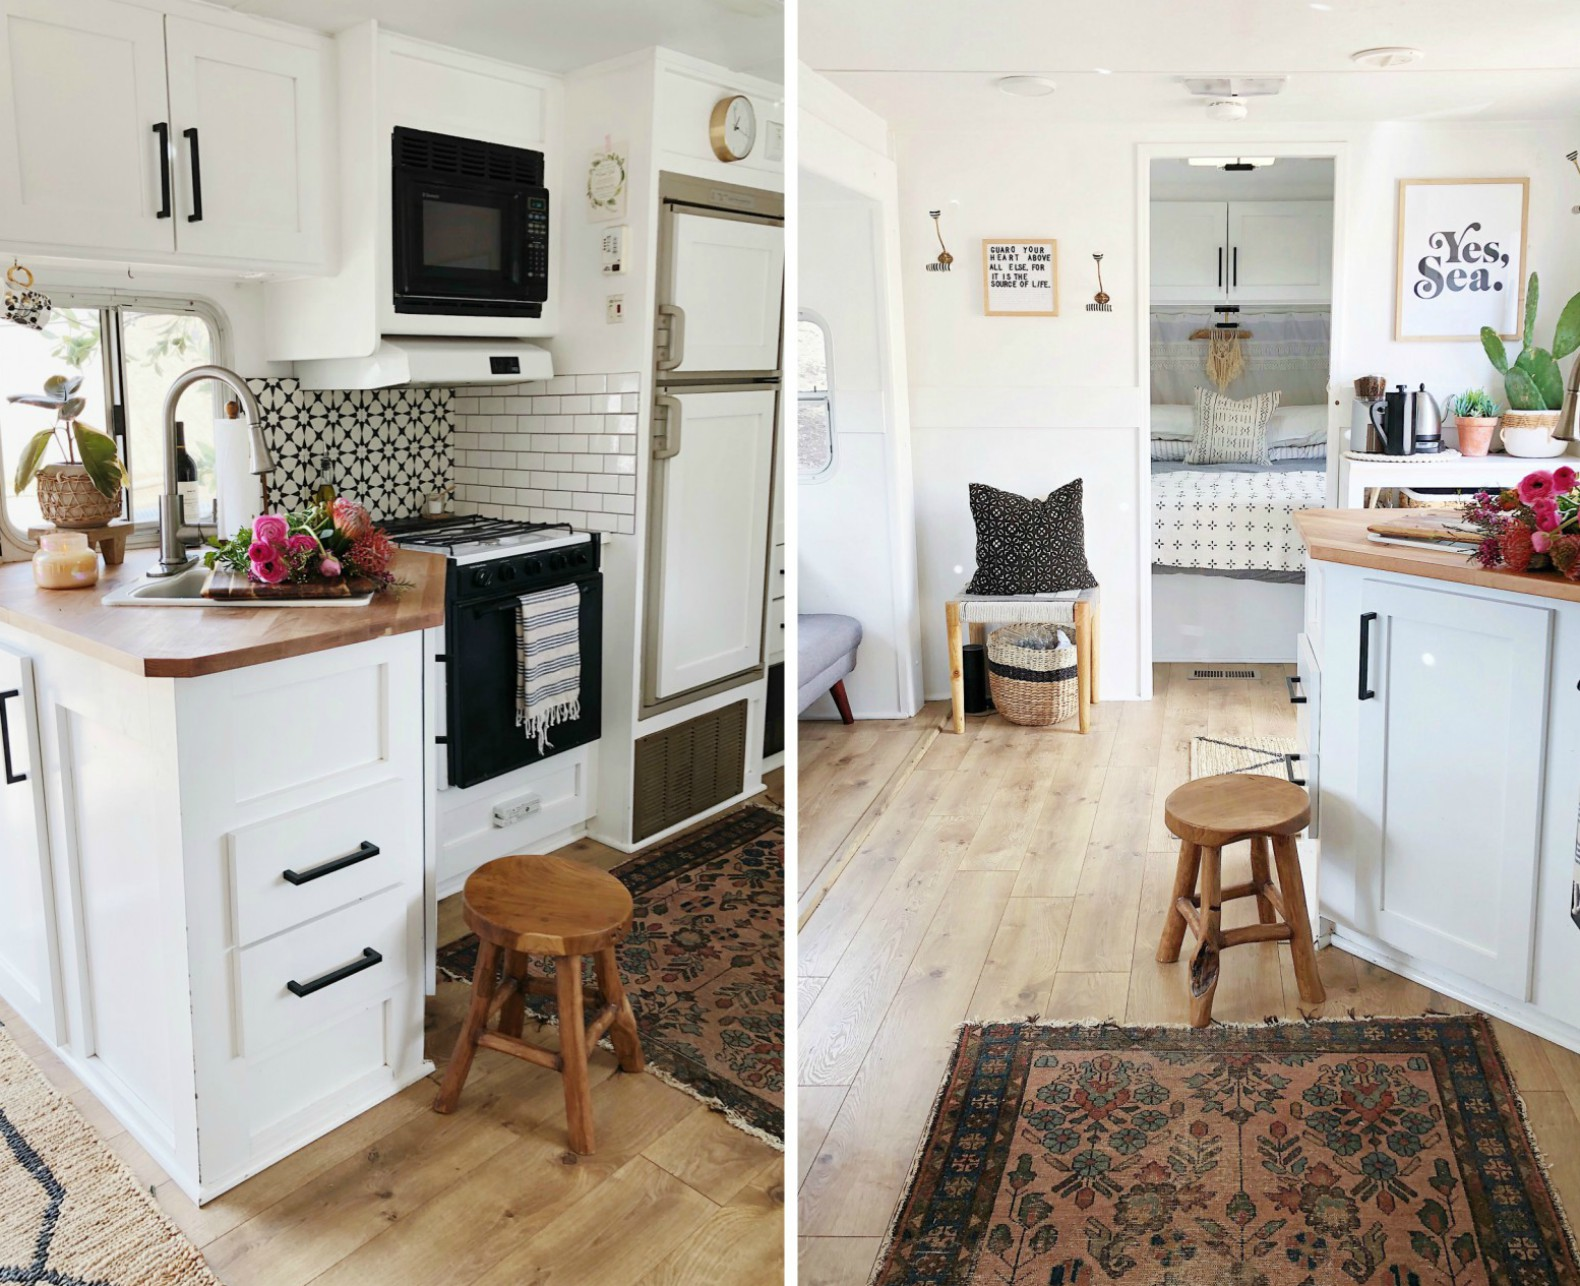 Couple Spends Just 3k To Convert An Old Camper Van Into